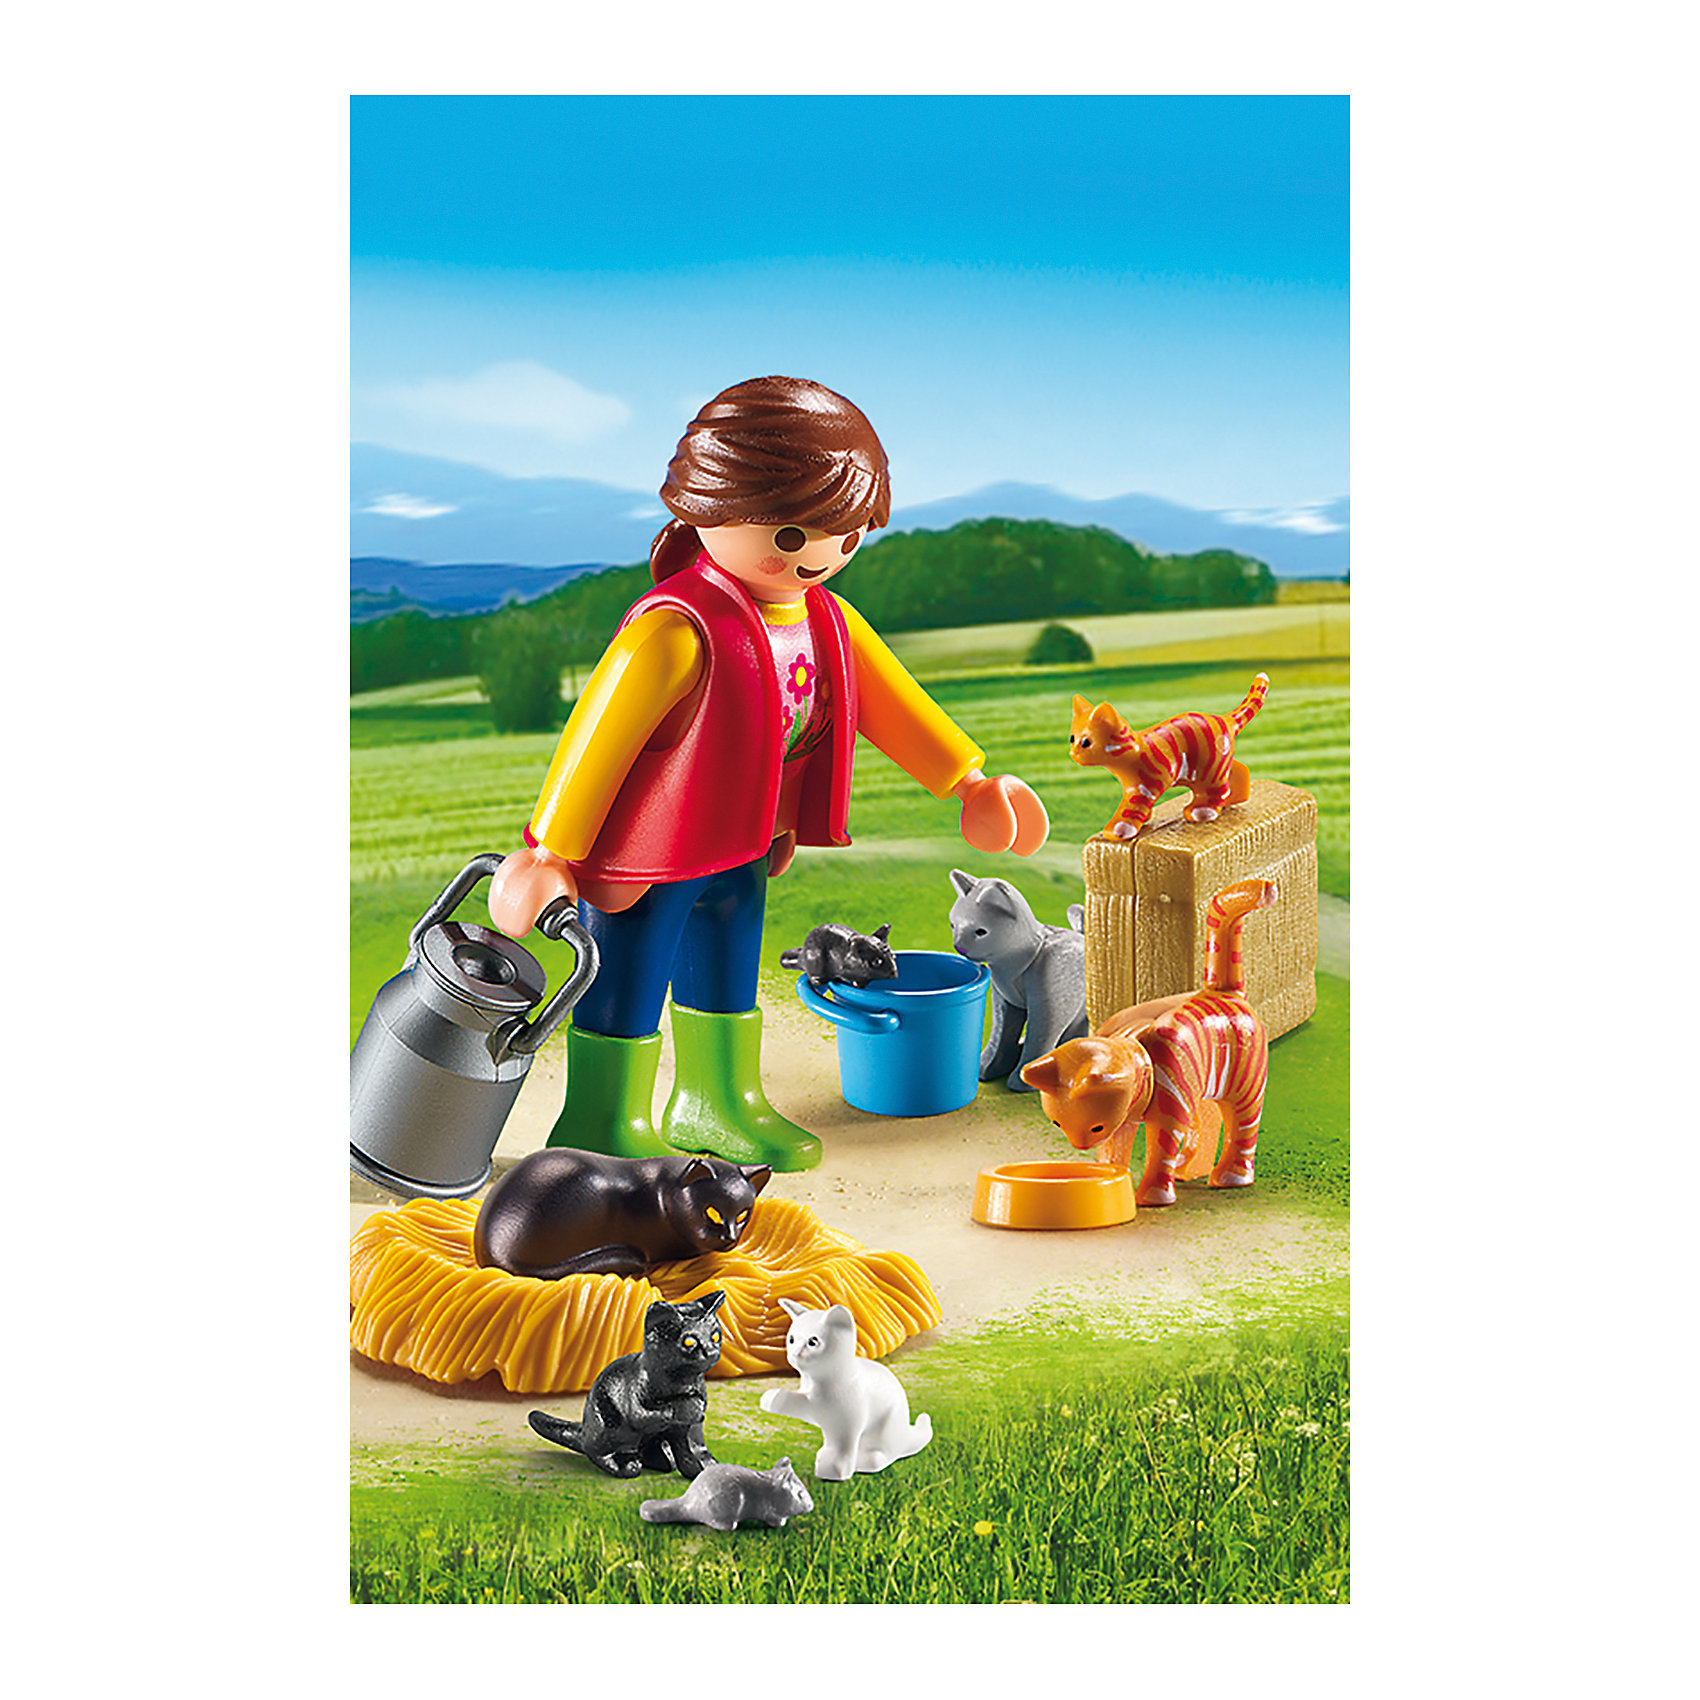 PLAYMOBIL® Ферма: Женщина с семейством кошек, PLAYMOBIL the effect of advertisement on consumer behavior and brand preference